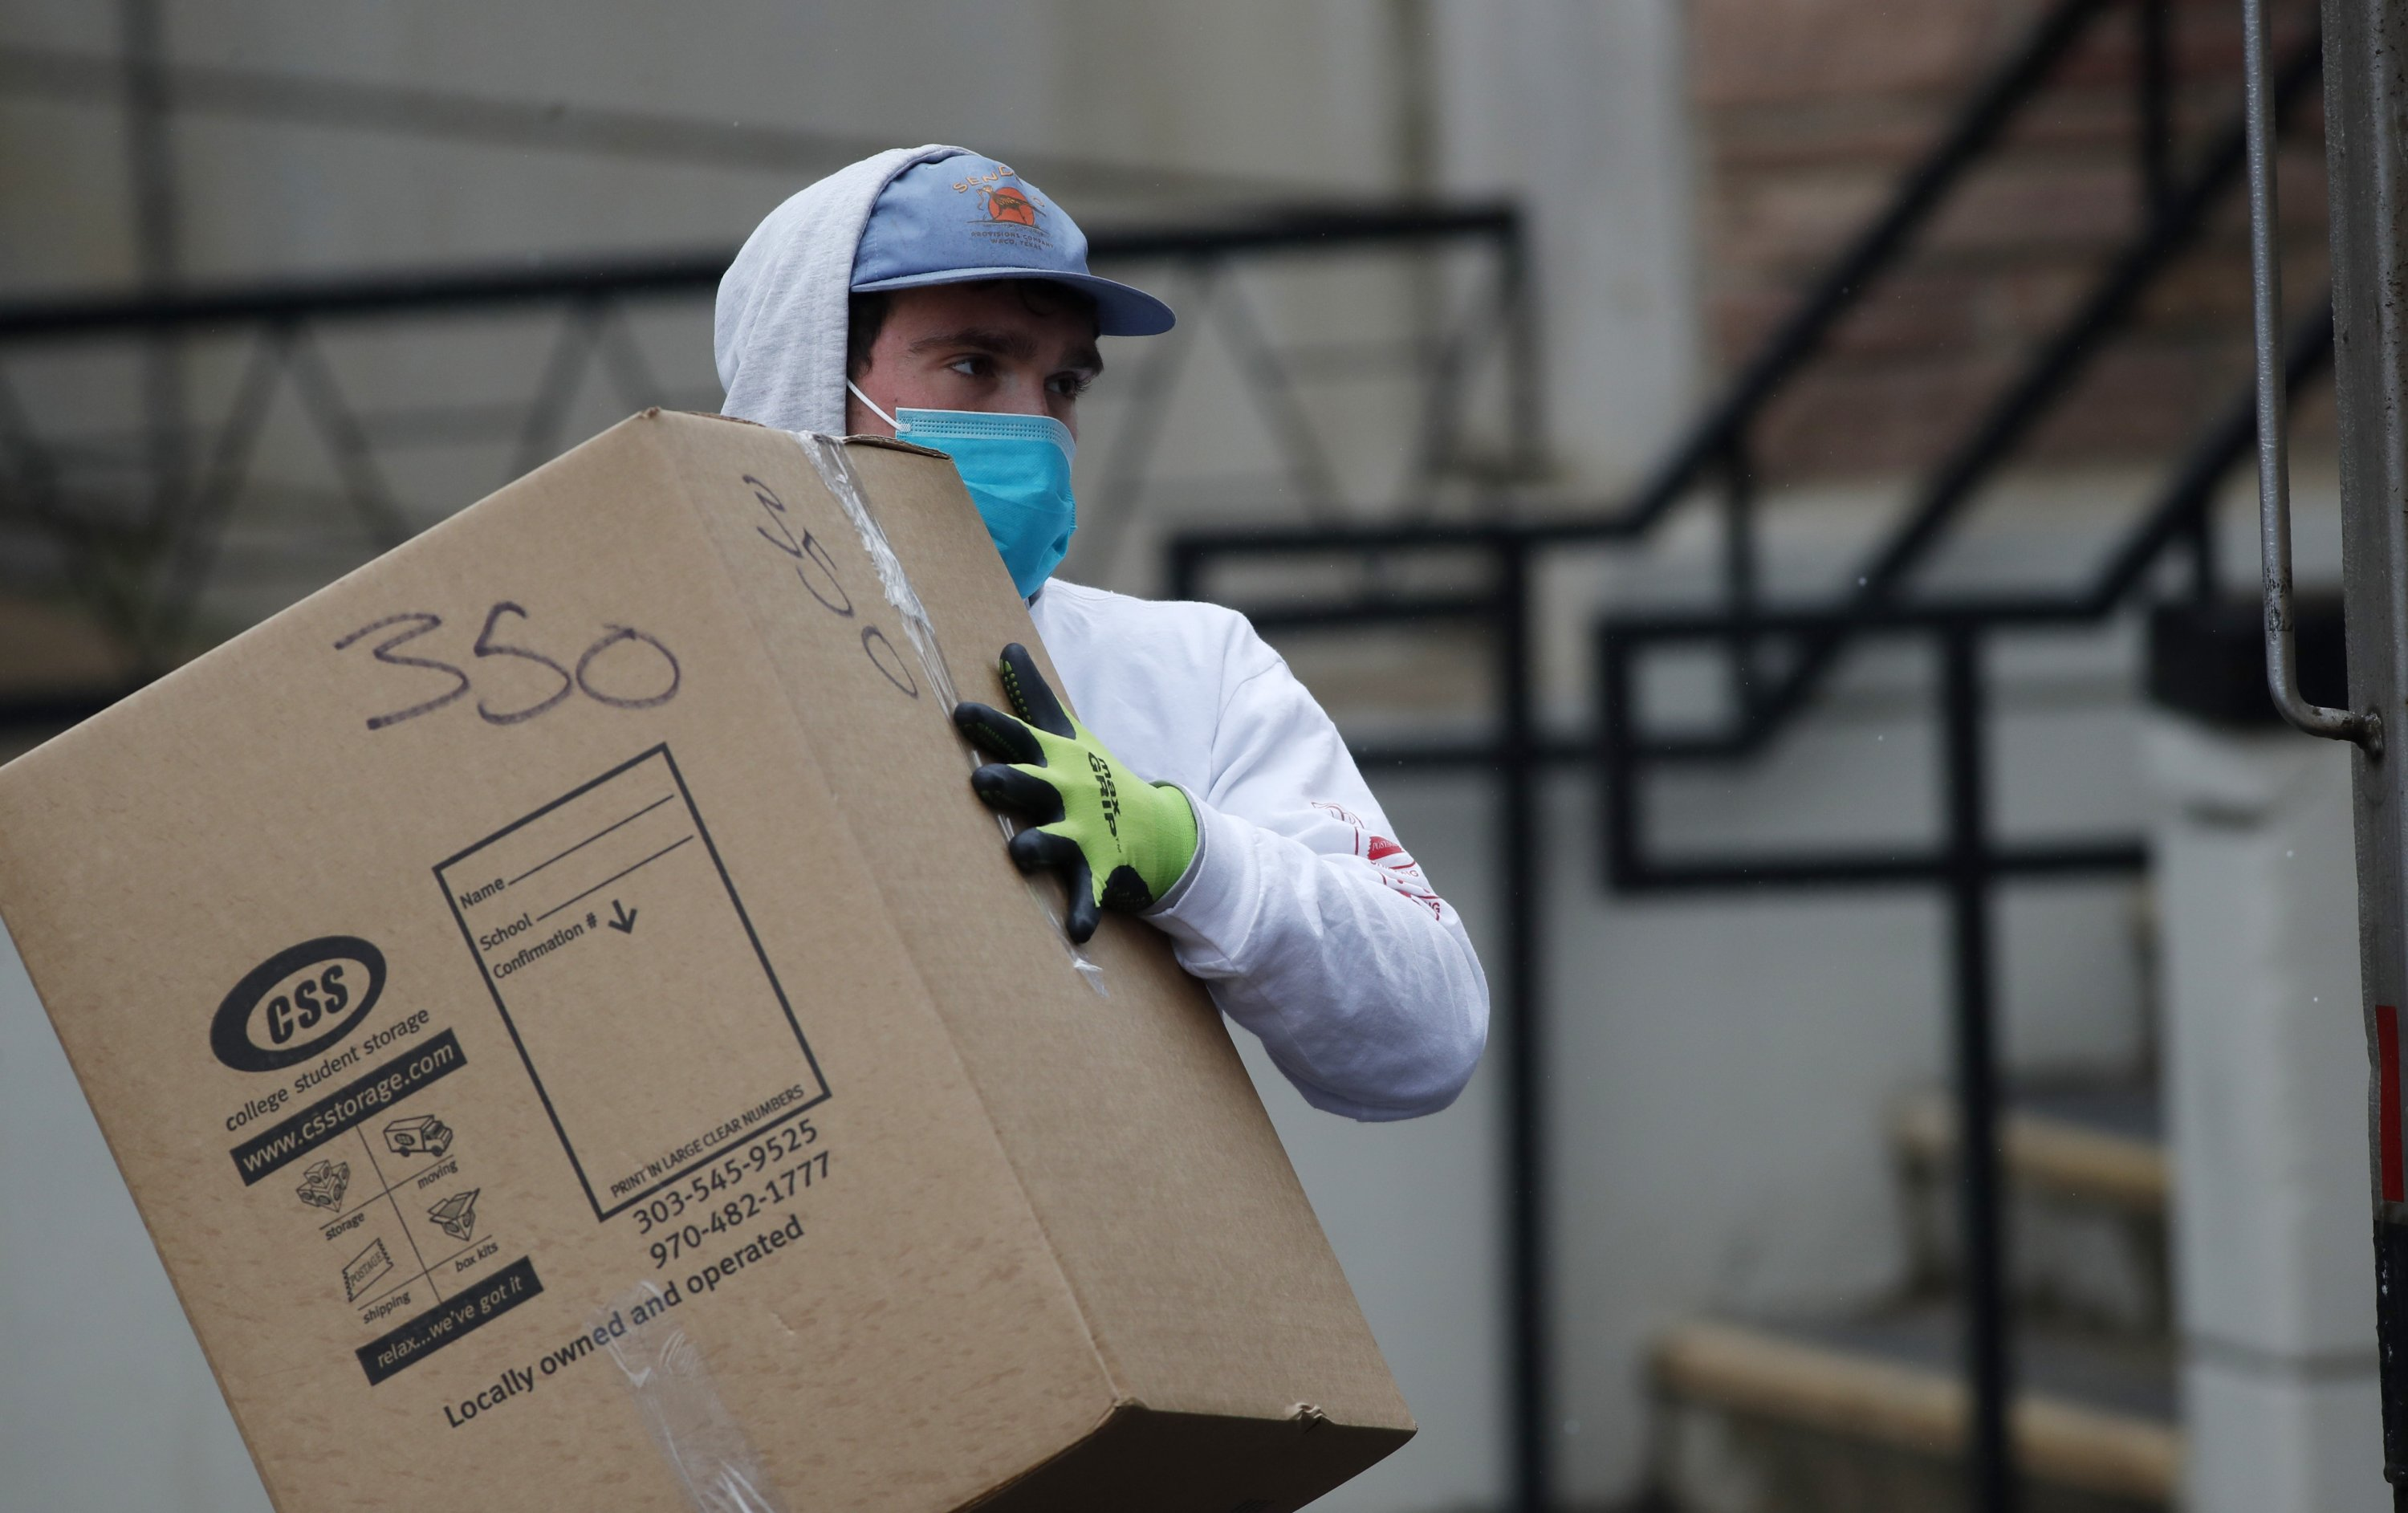 A worker wearing gloves and a surgical mask loads a box into a van while cleaning out dormitory rooms on the campus of the University of Colorado, April 2, 2020, in Boulder, Colo. (AP Photo)